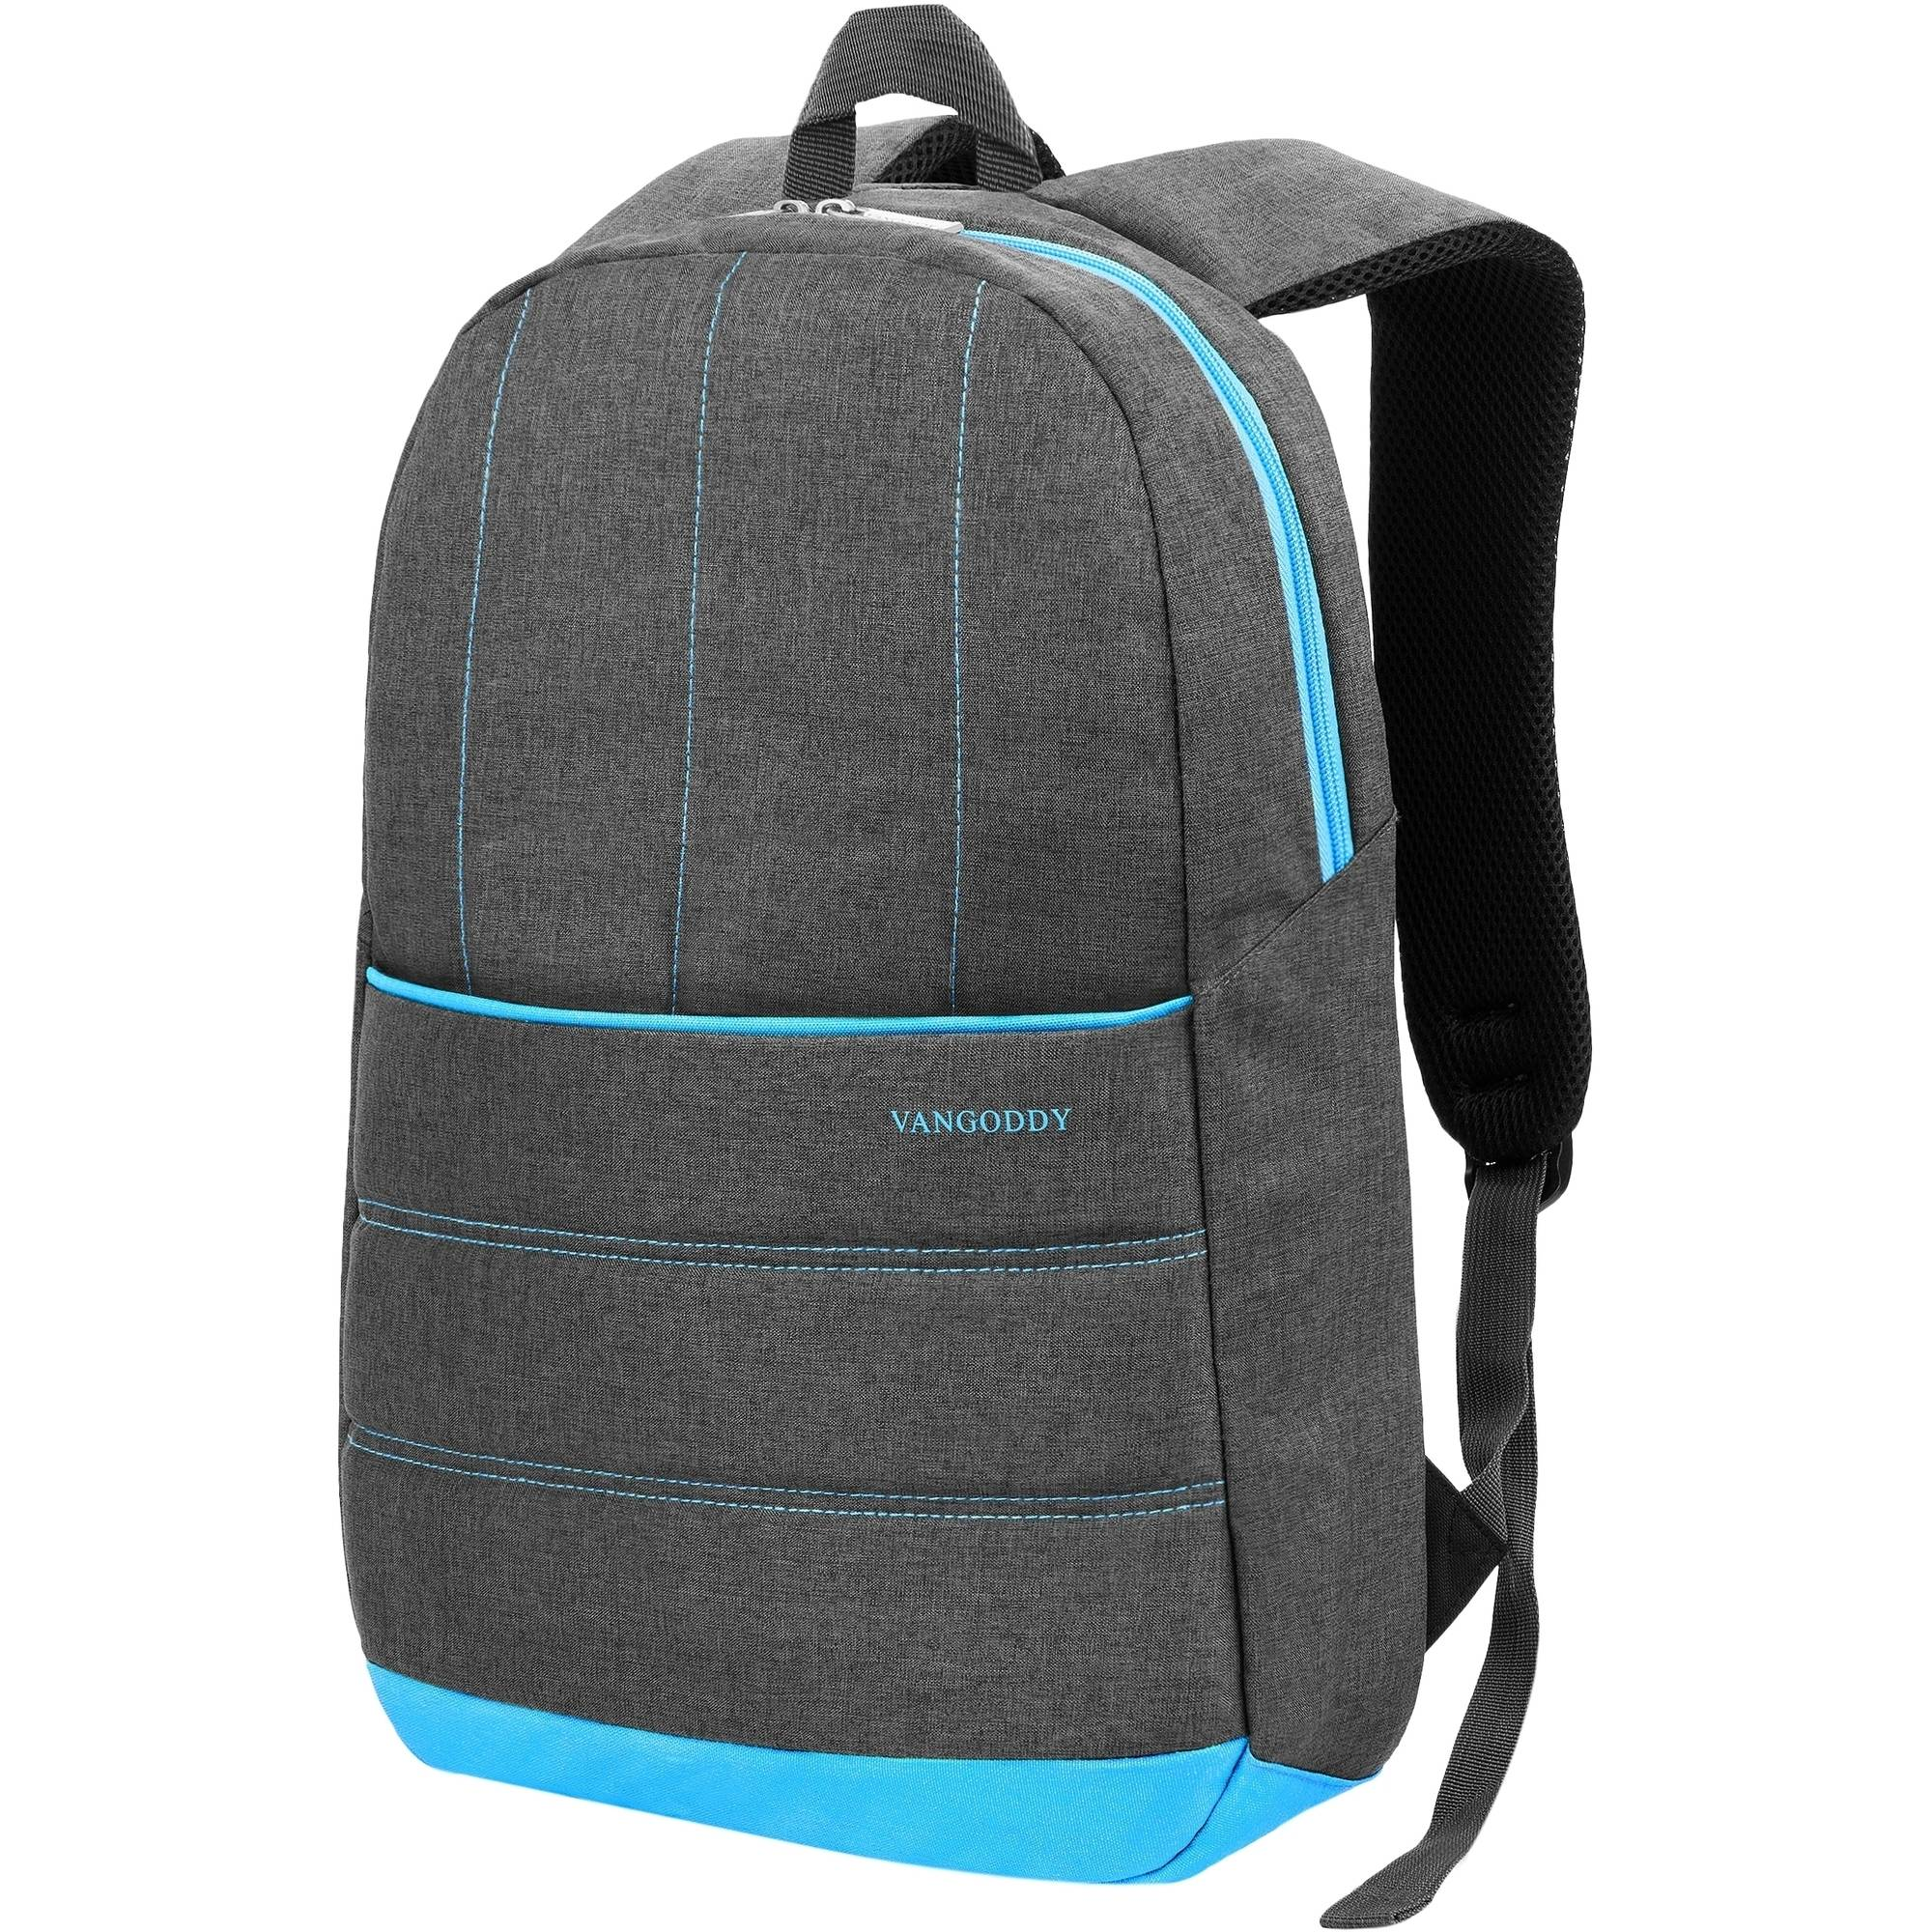 """Vangoddy Grove Padded Nylon School Hiking Office Laptop Backpack fits up to 15.6"""" Laptops"""